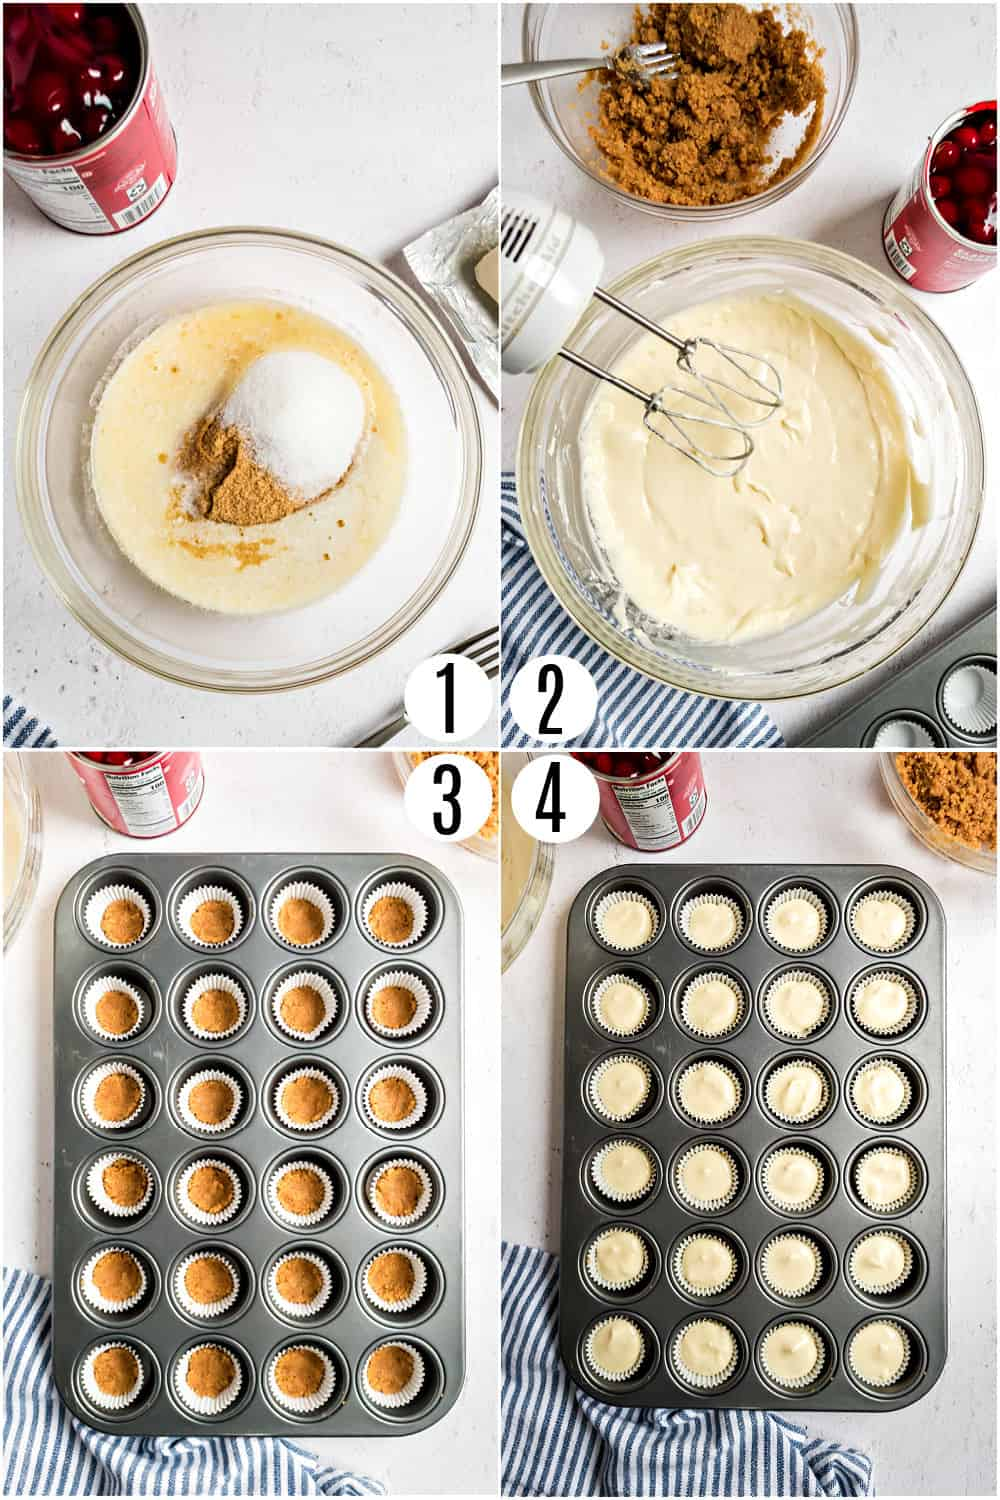 Step by step photos showing how to make mini cherry cheescakes.